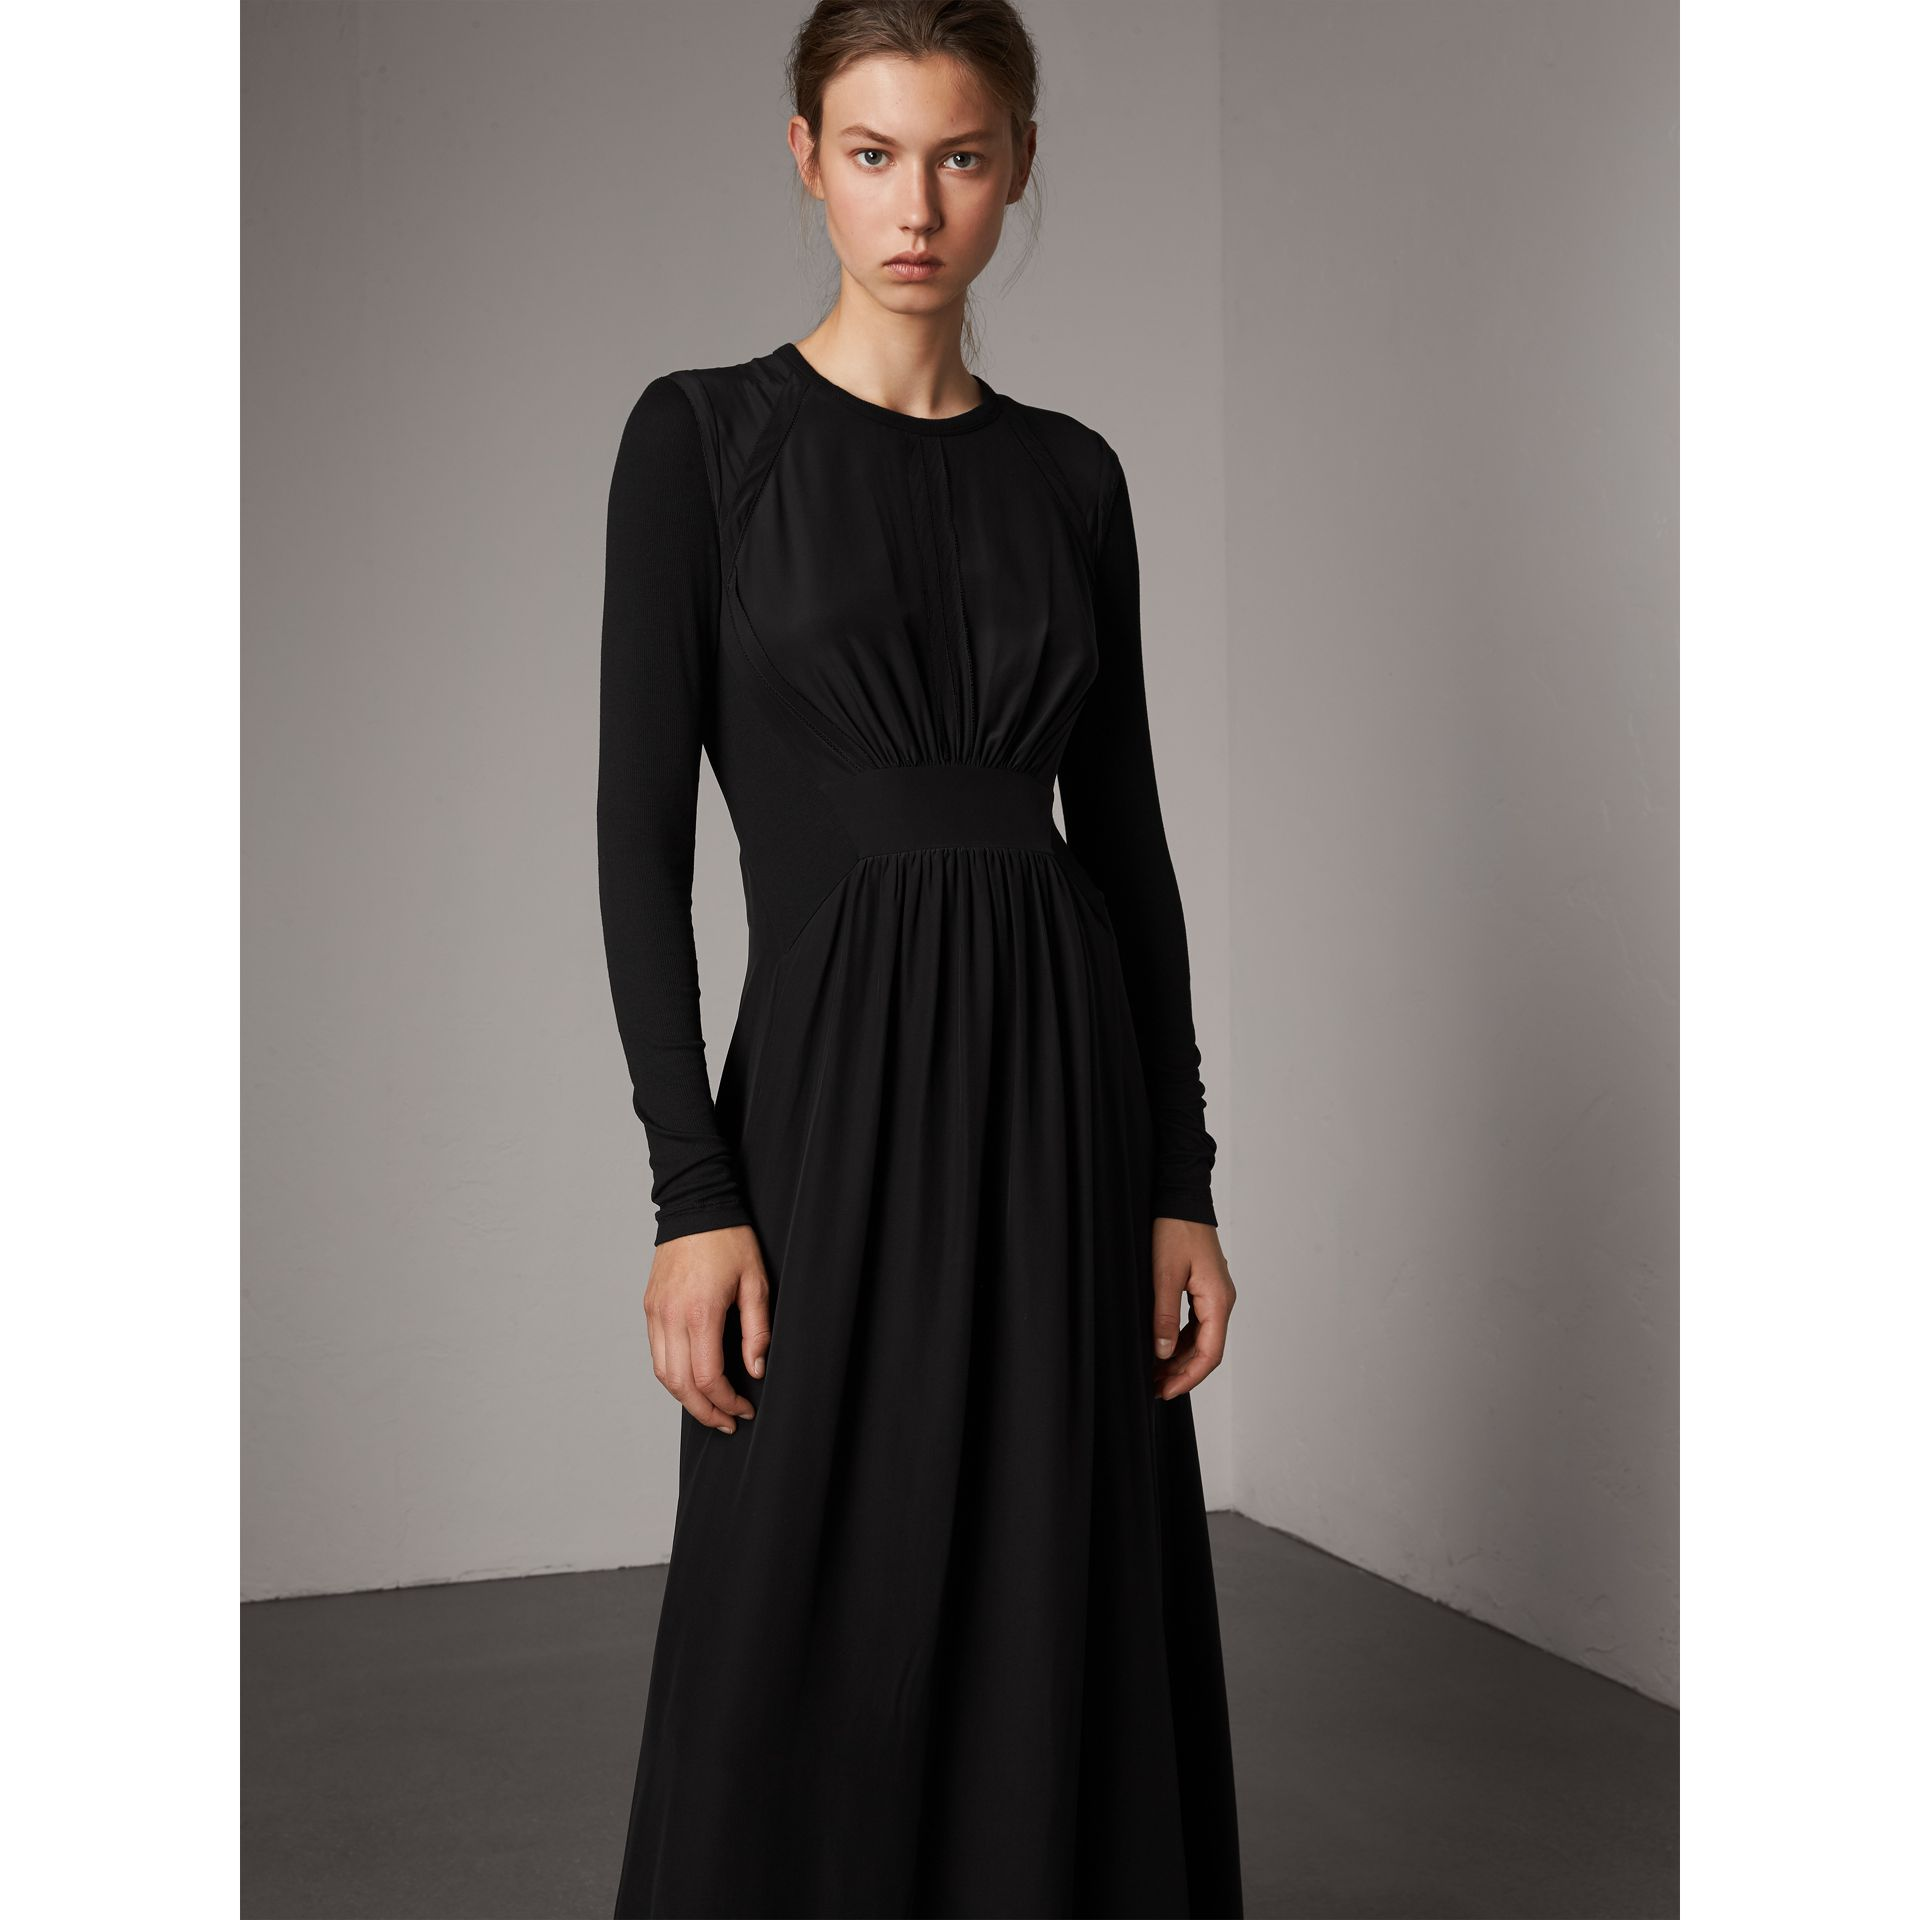 Silk Floor-length Gathered Dress in Black - Women | Burberry Singapore - gallery image 5